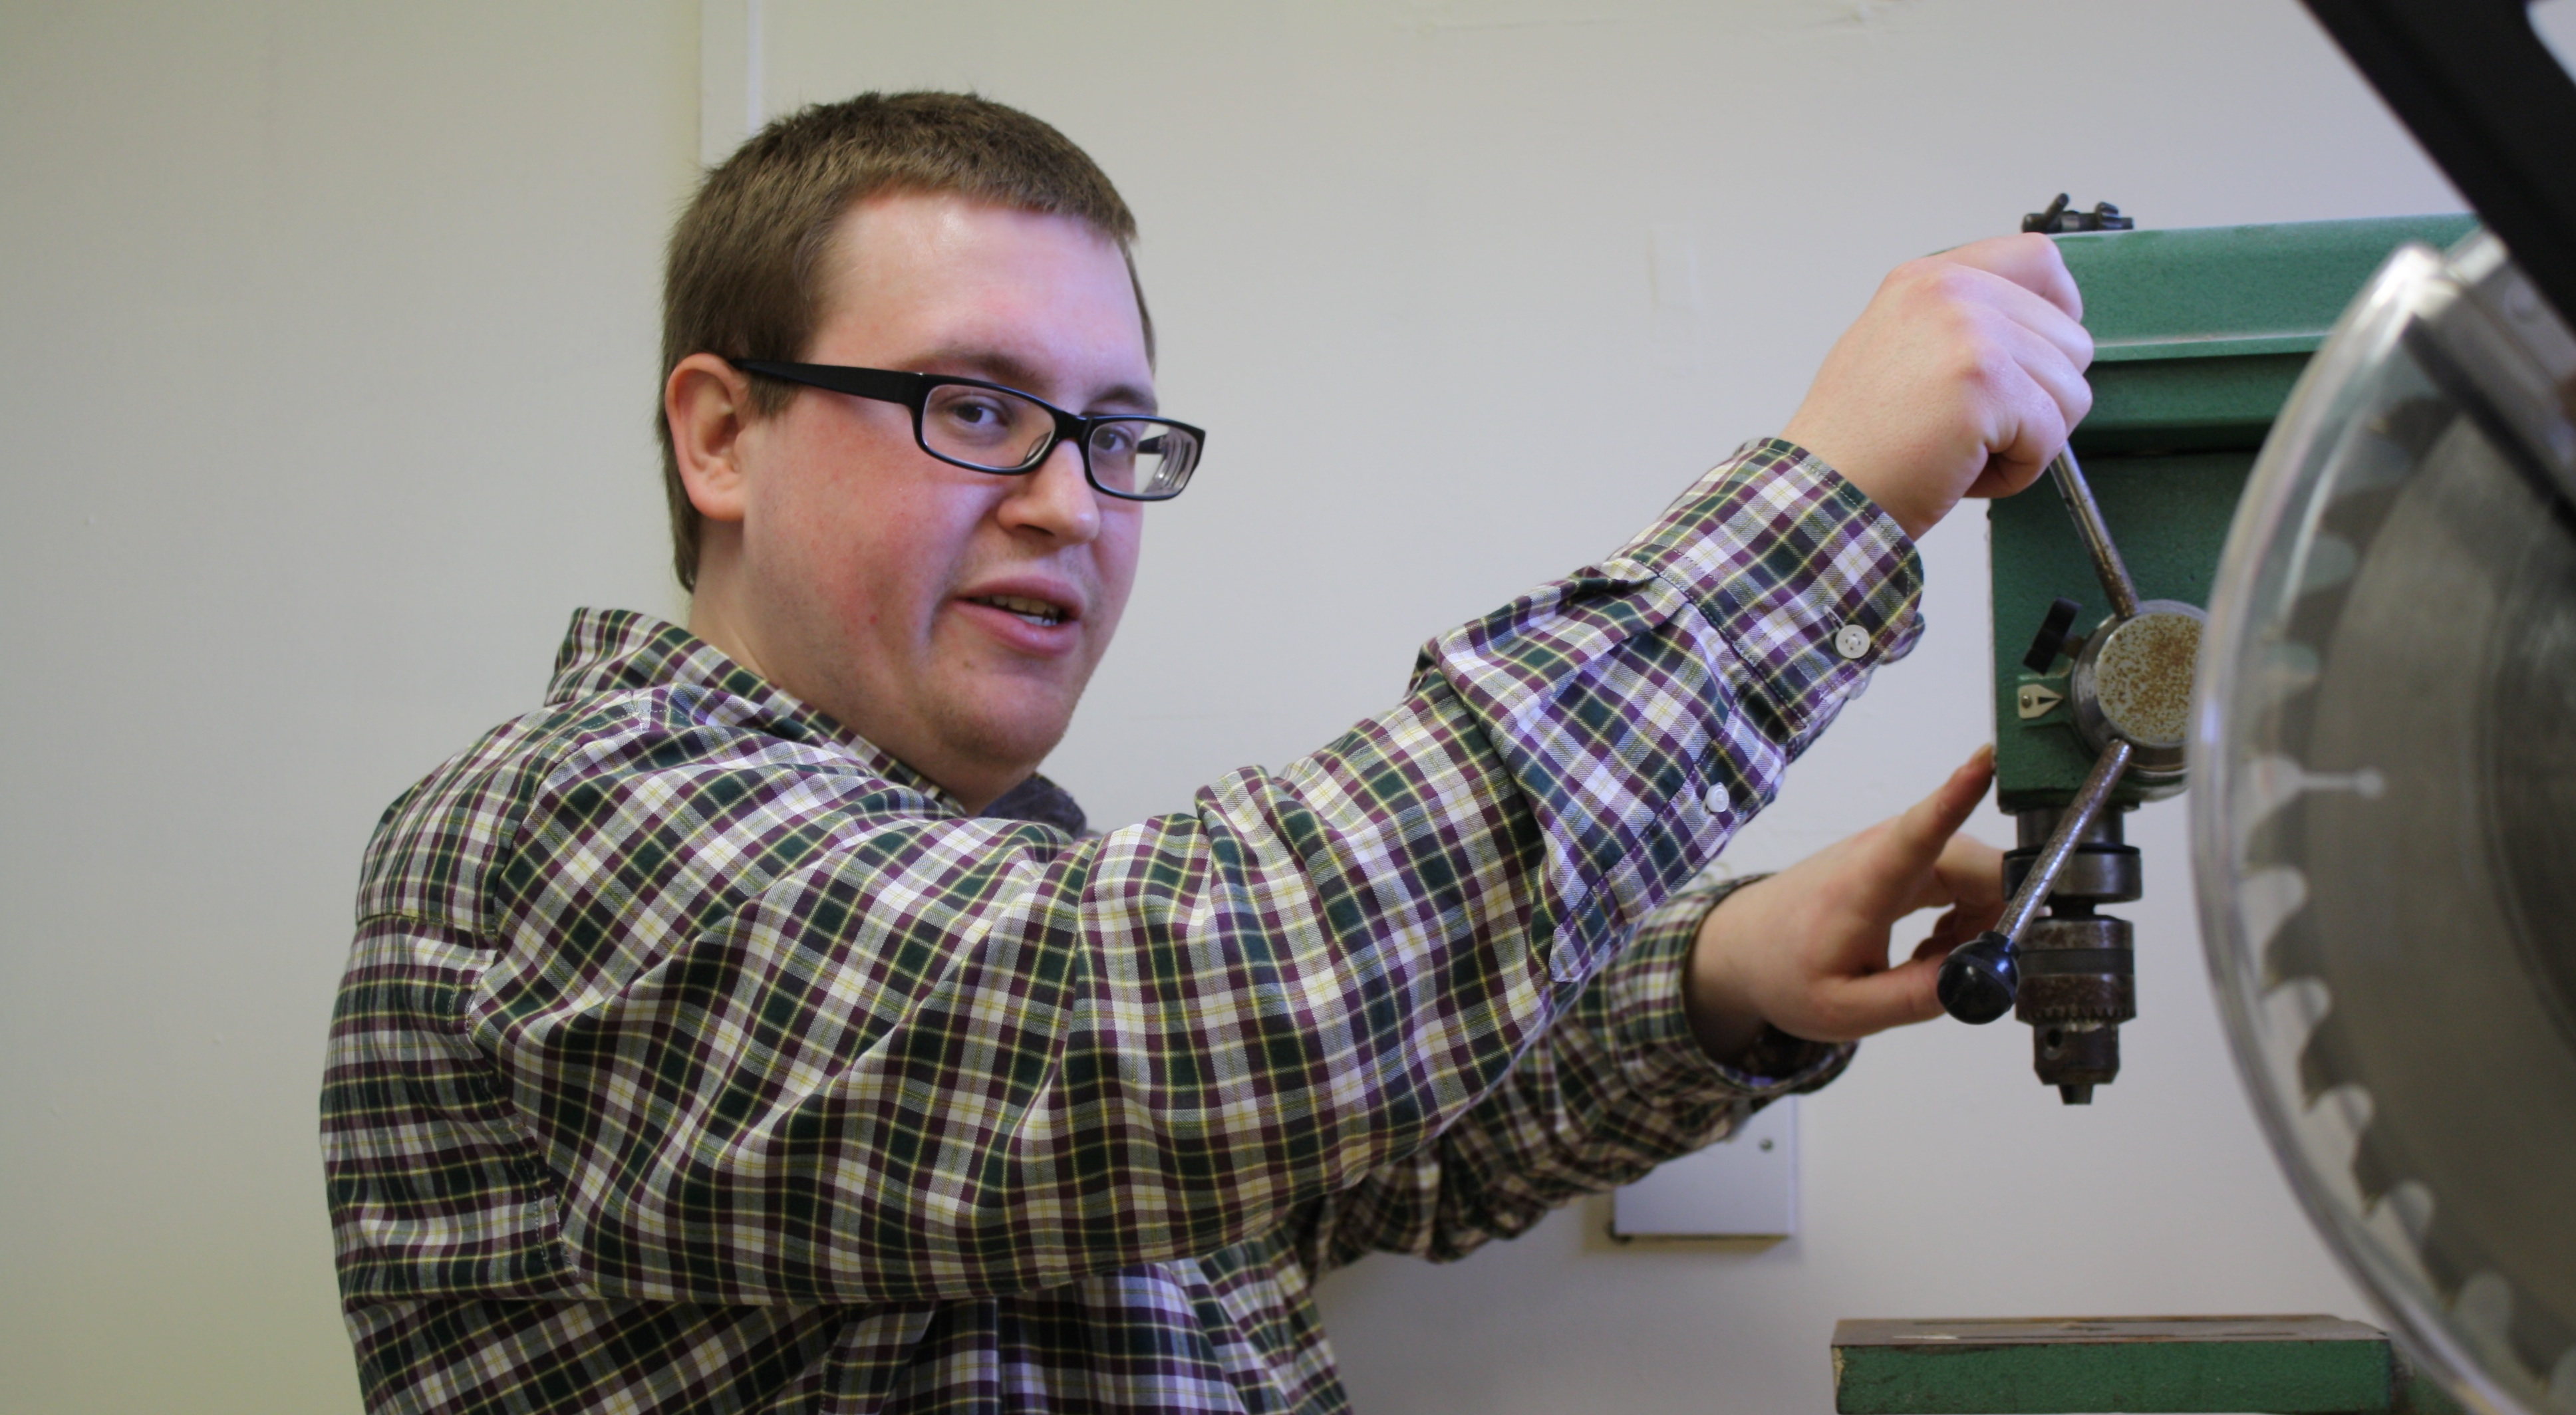 Westhill Men's Shed PHD student